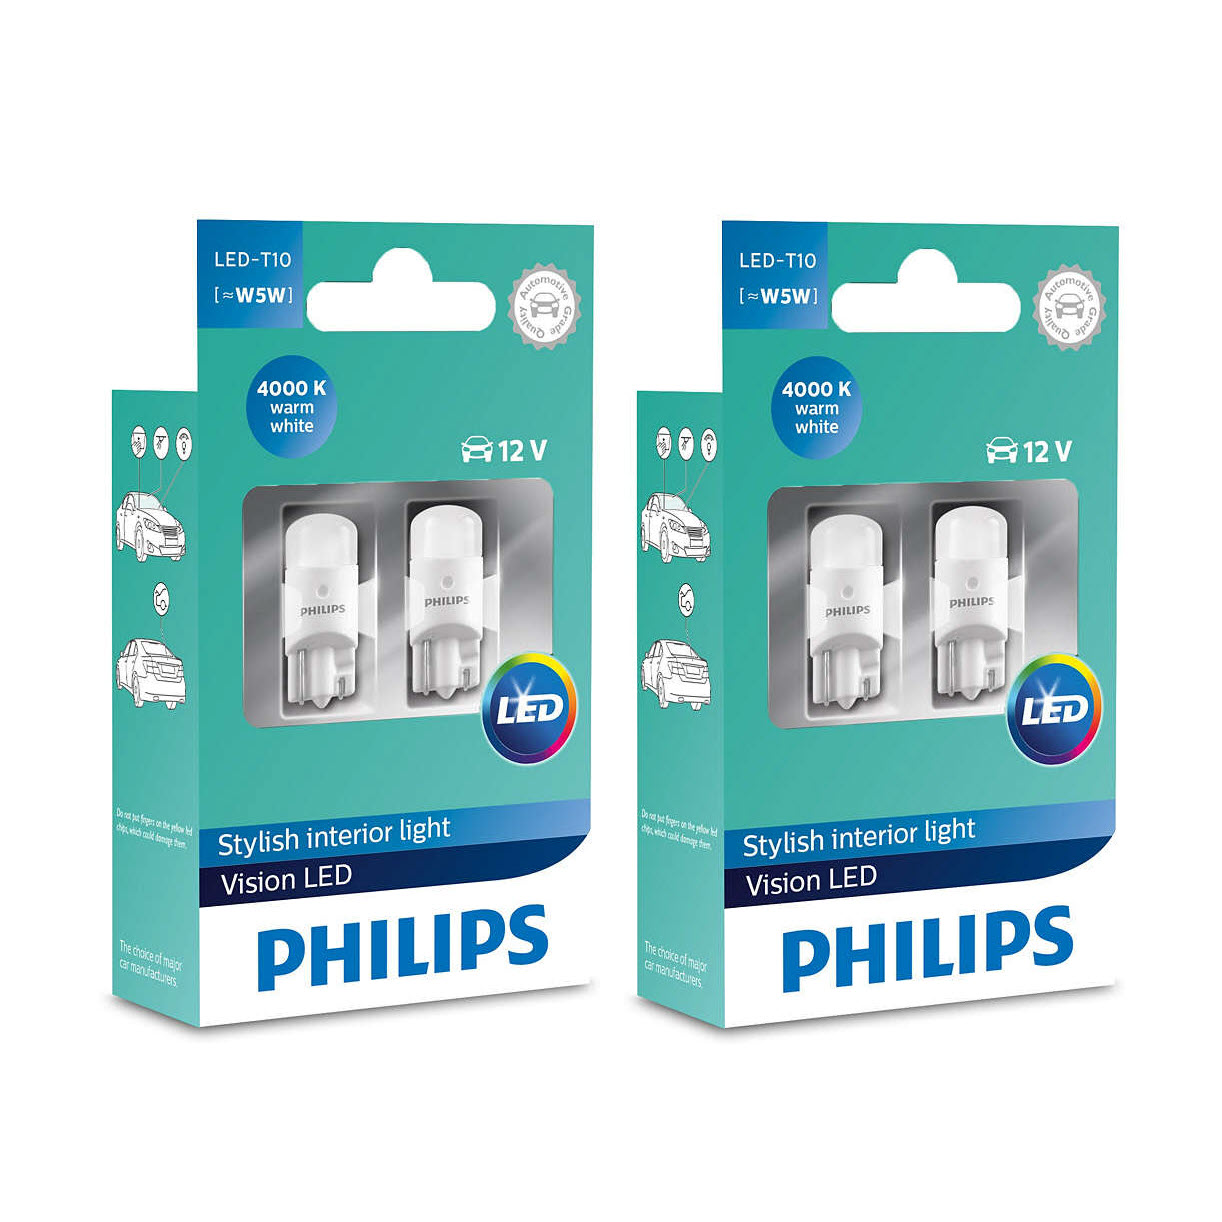 2x T10 Philips Vision LED 4000K (4 bulbs)